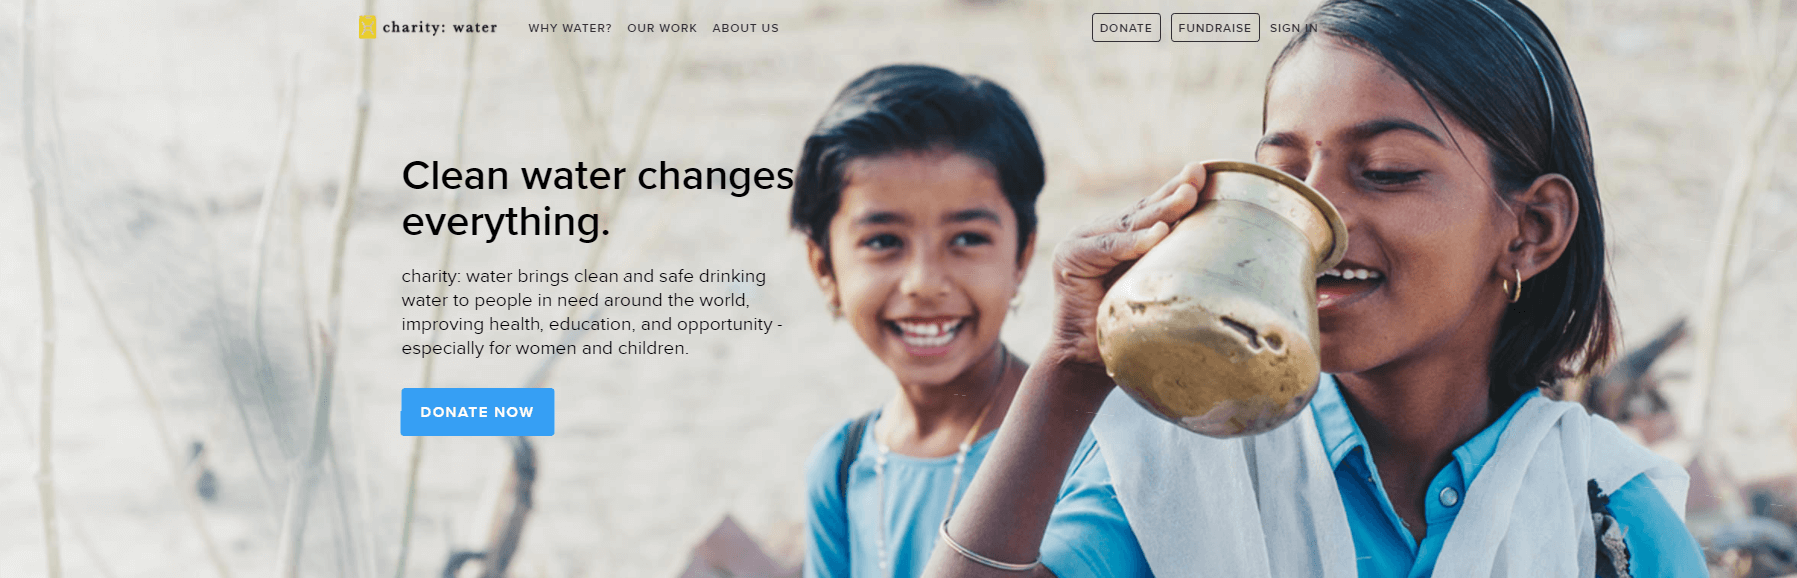 The Charity Water website.